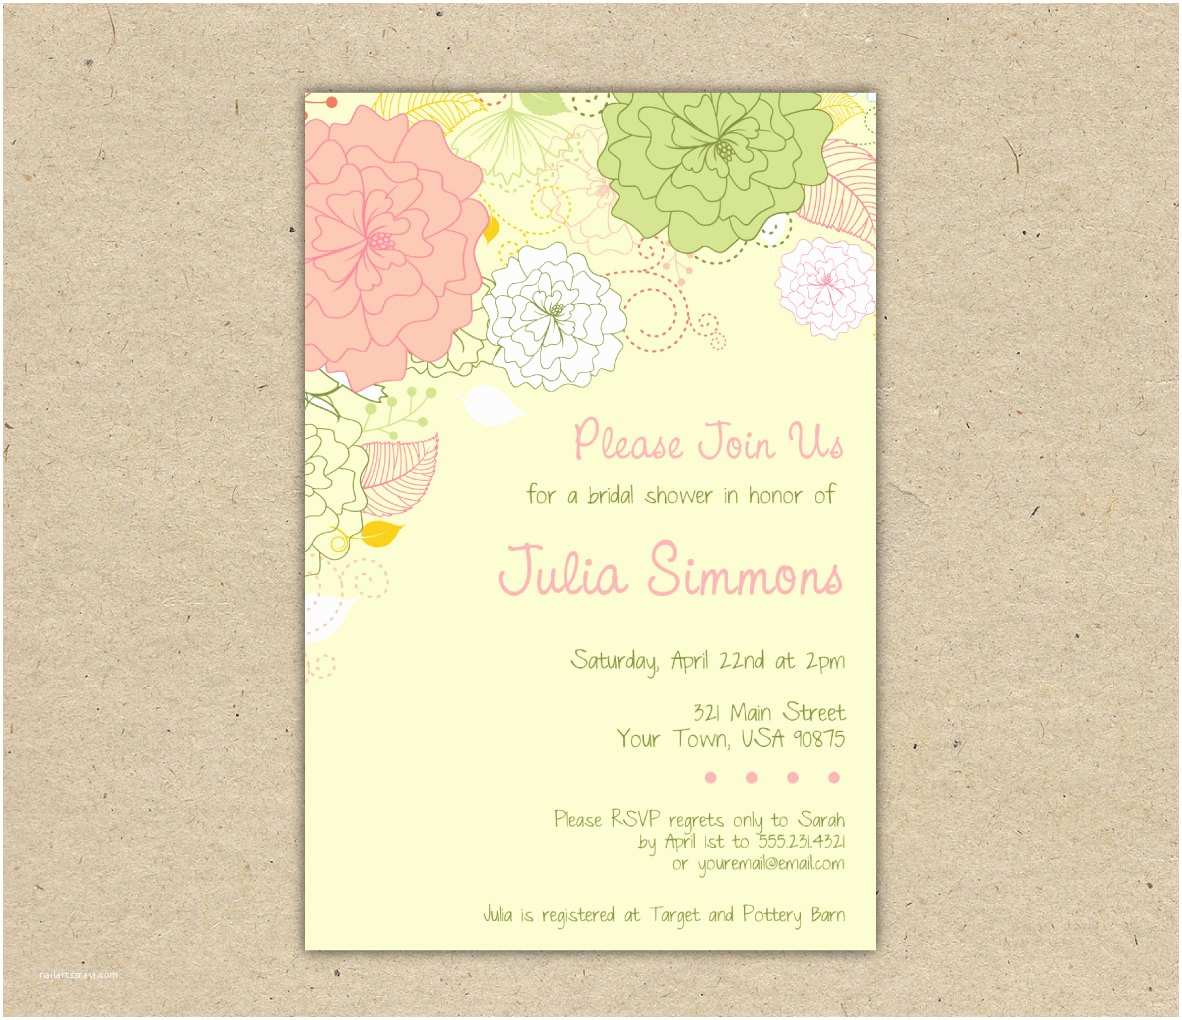 Couples Wedding Shower Invitations Templates Free Free Wedding Shower Invitation Templates Weddingwoow